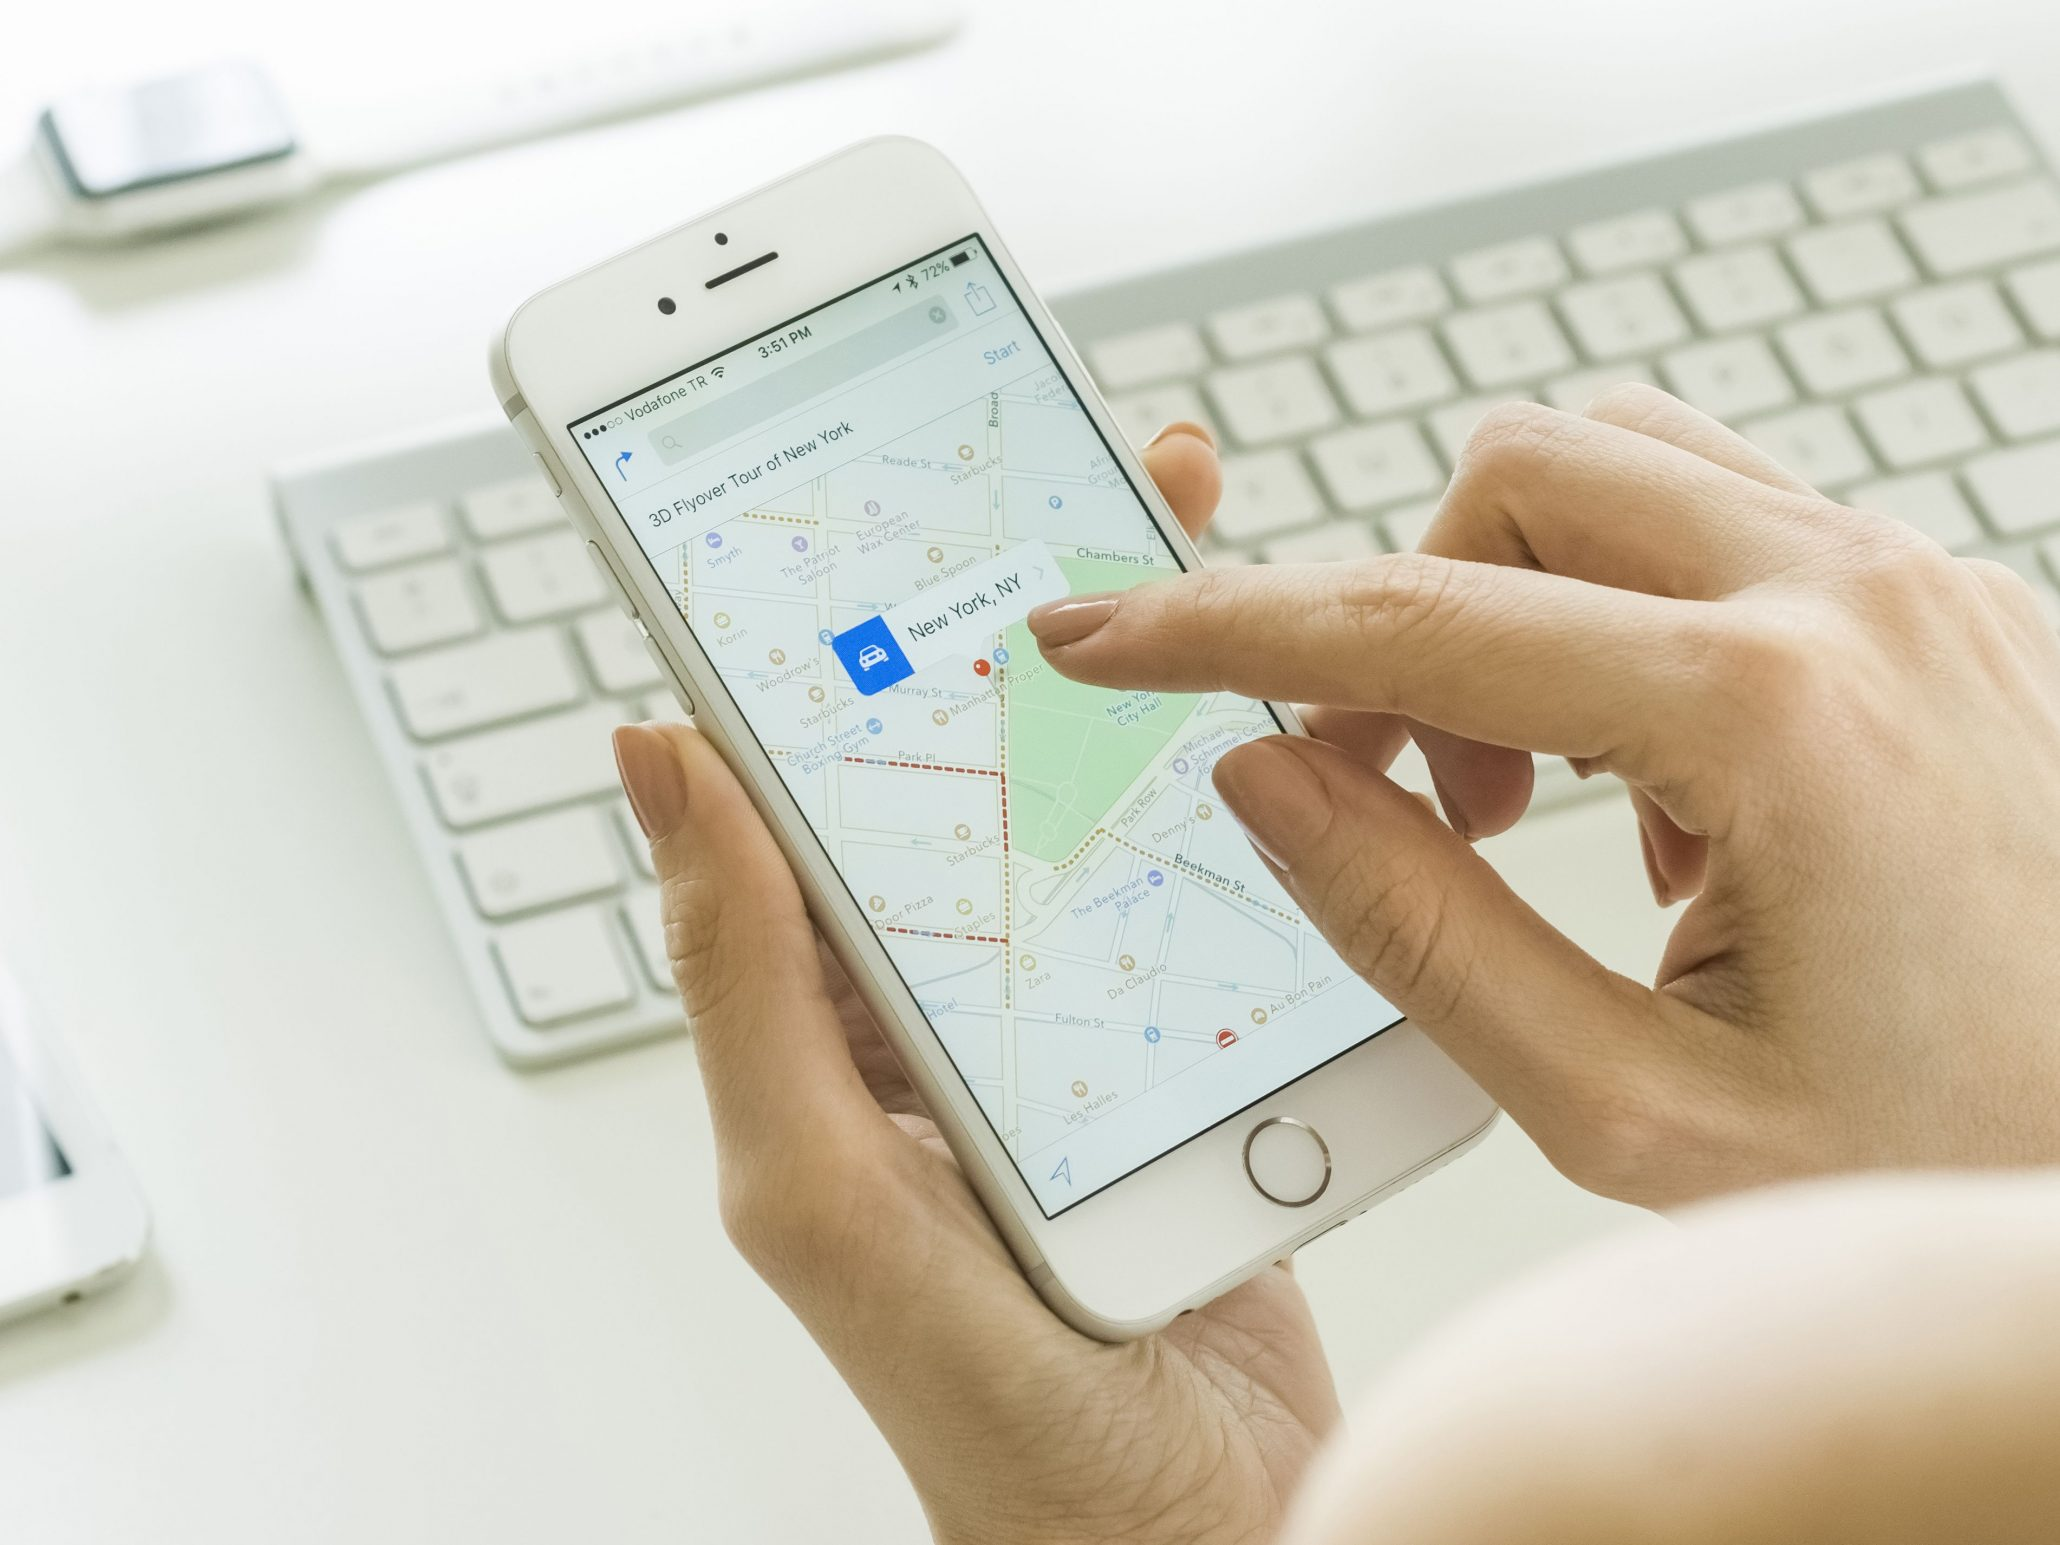 With Phonetracking App You can Control Your Children